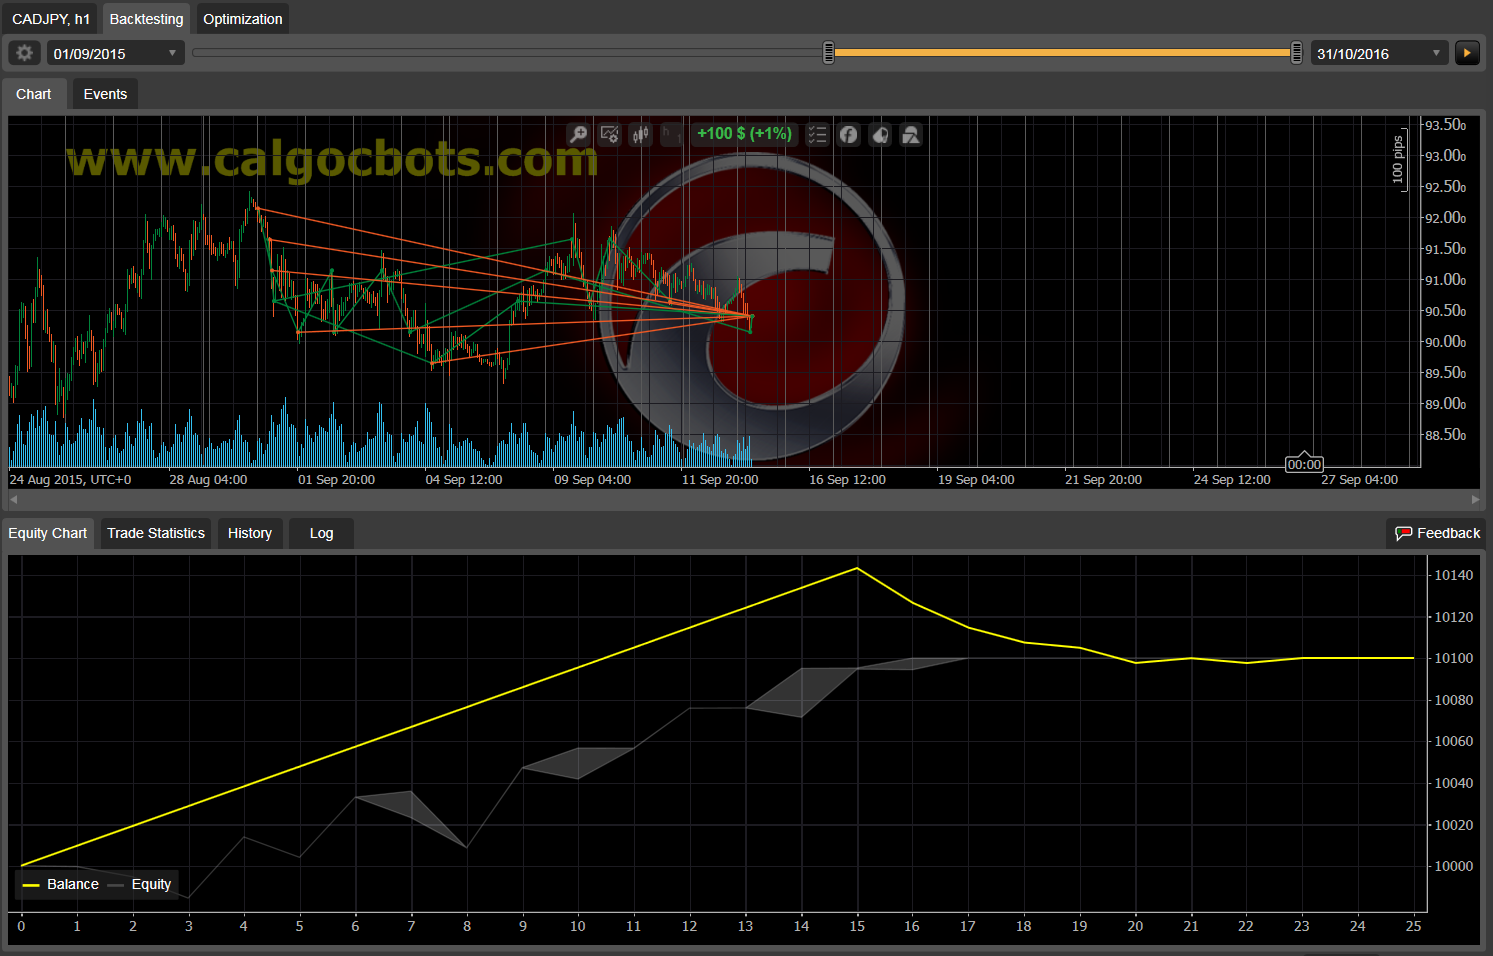 Dual Grid Hedge CAD JPY 1h cAlgo cBots cTrader 1k 100 50 100 - 02 a